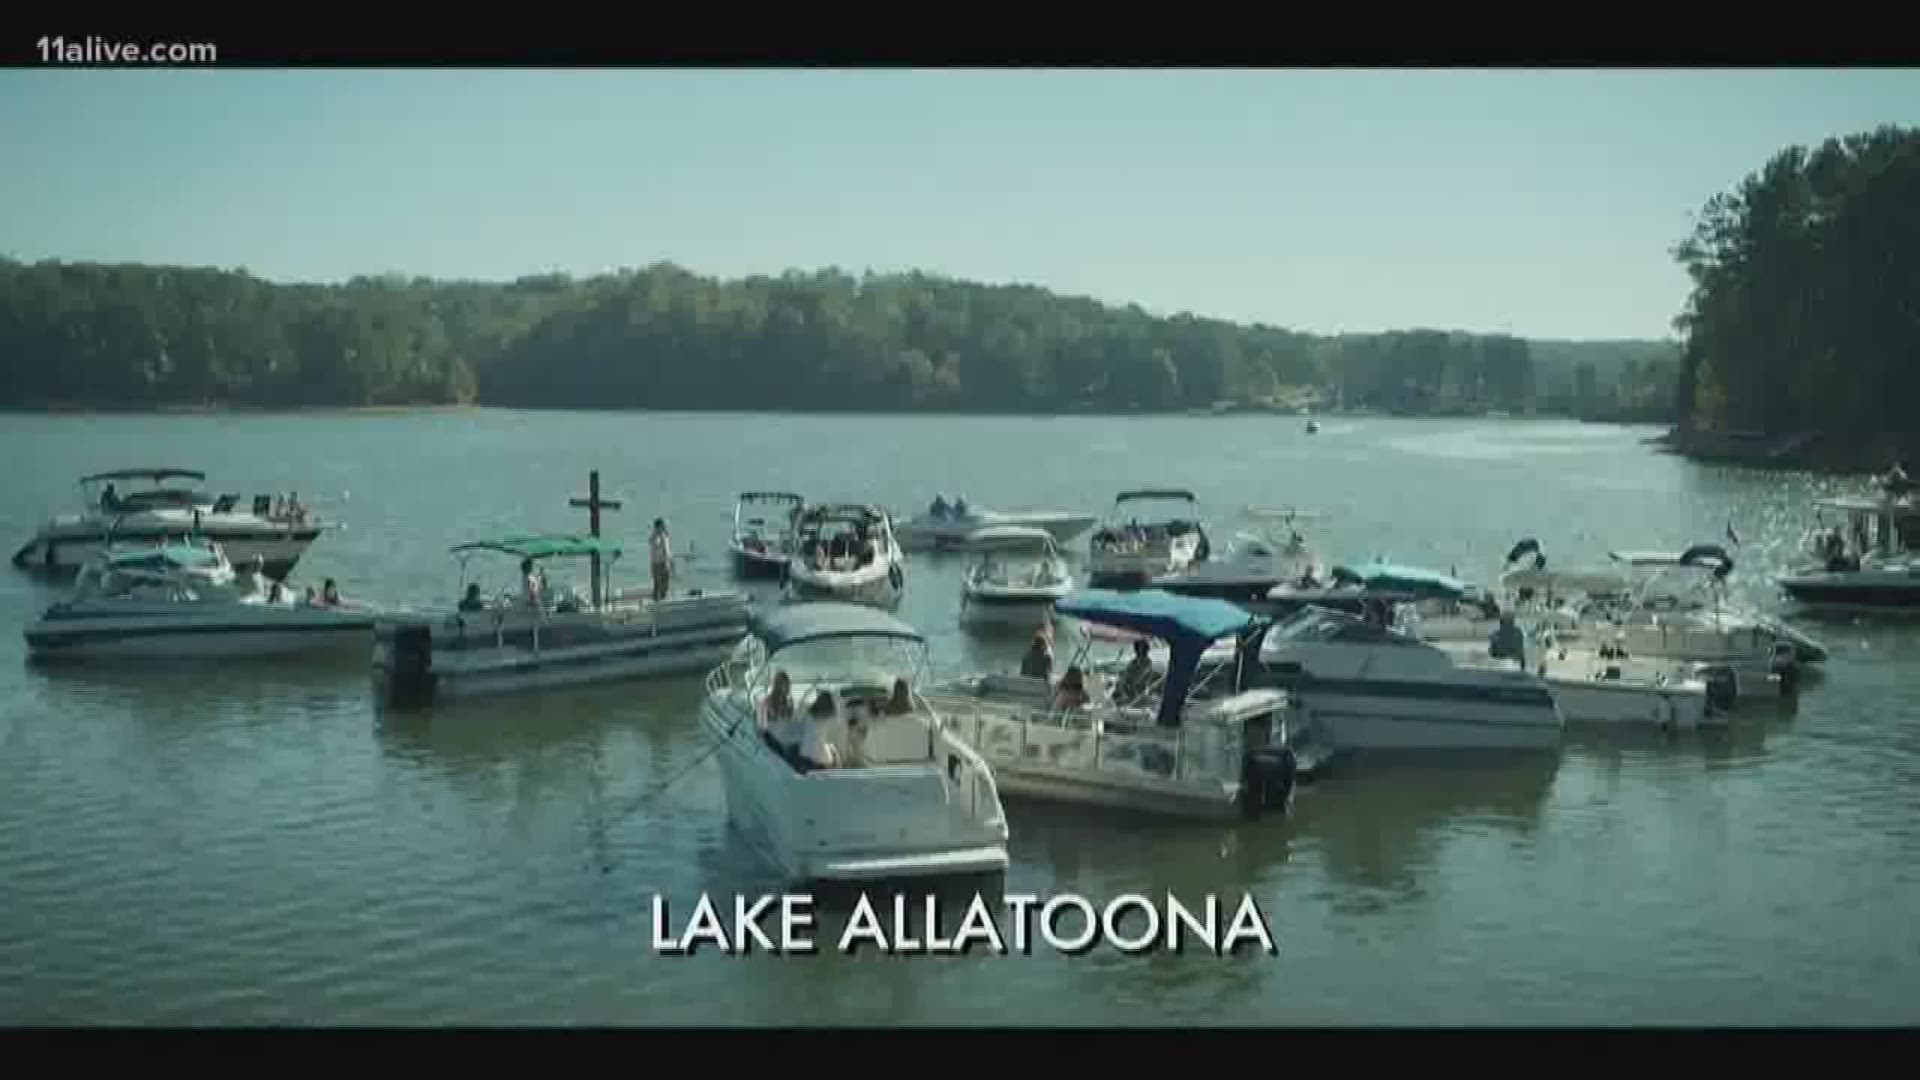 TV shows and Movies filming in Atlanta